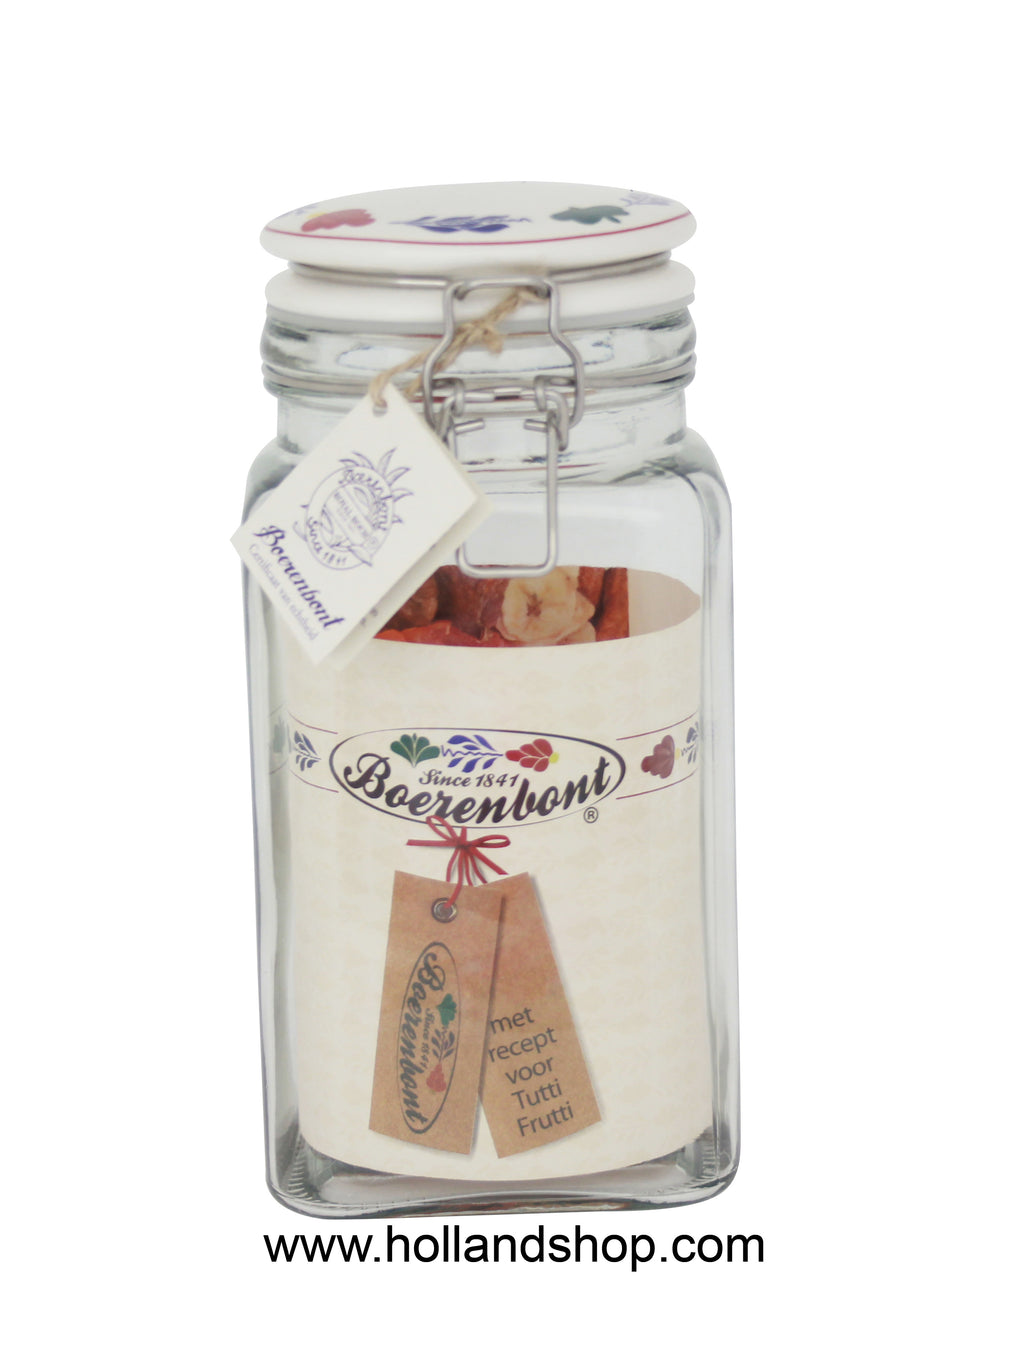 Boerenbont Glass - Preserving Jar (1.7L)